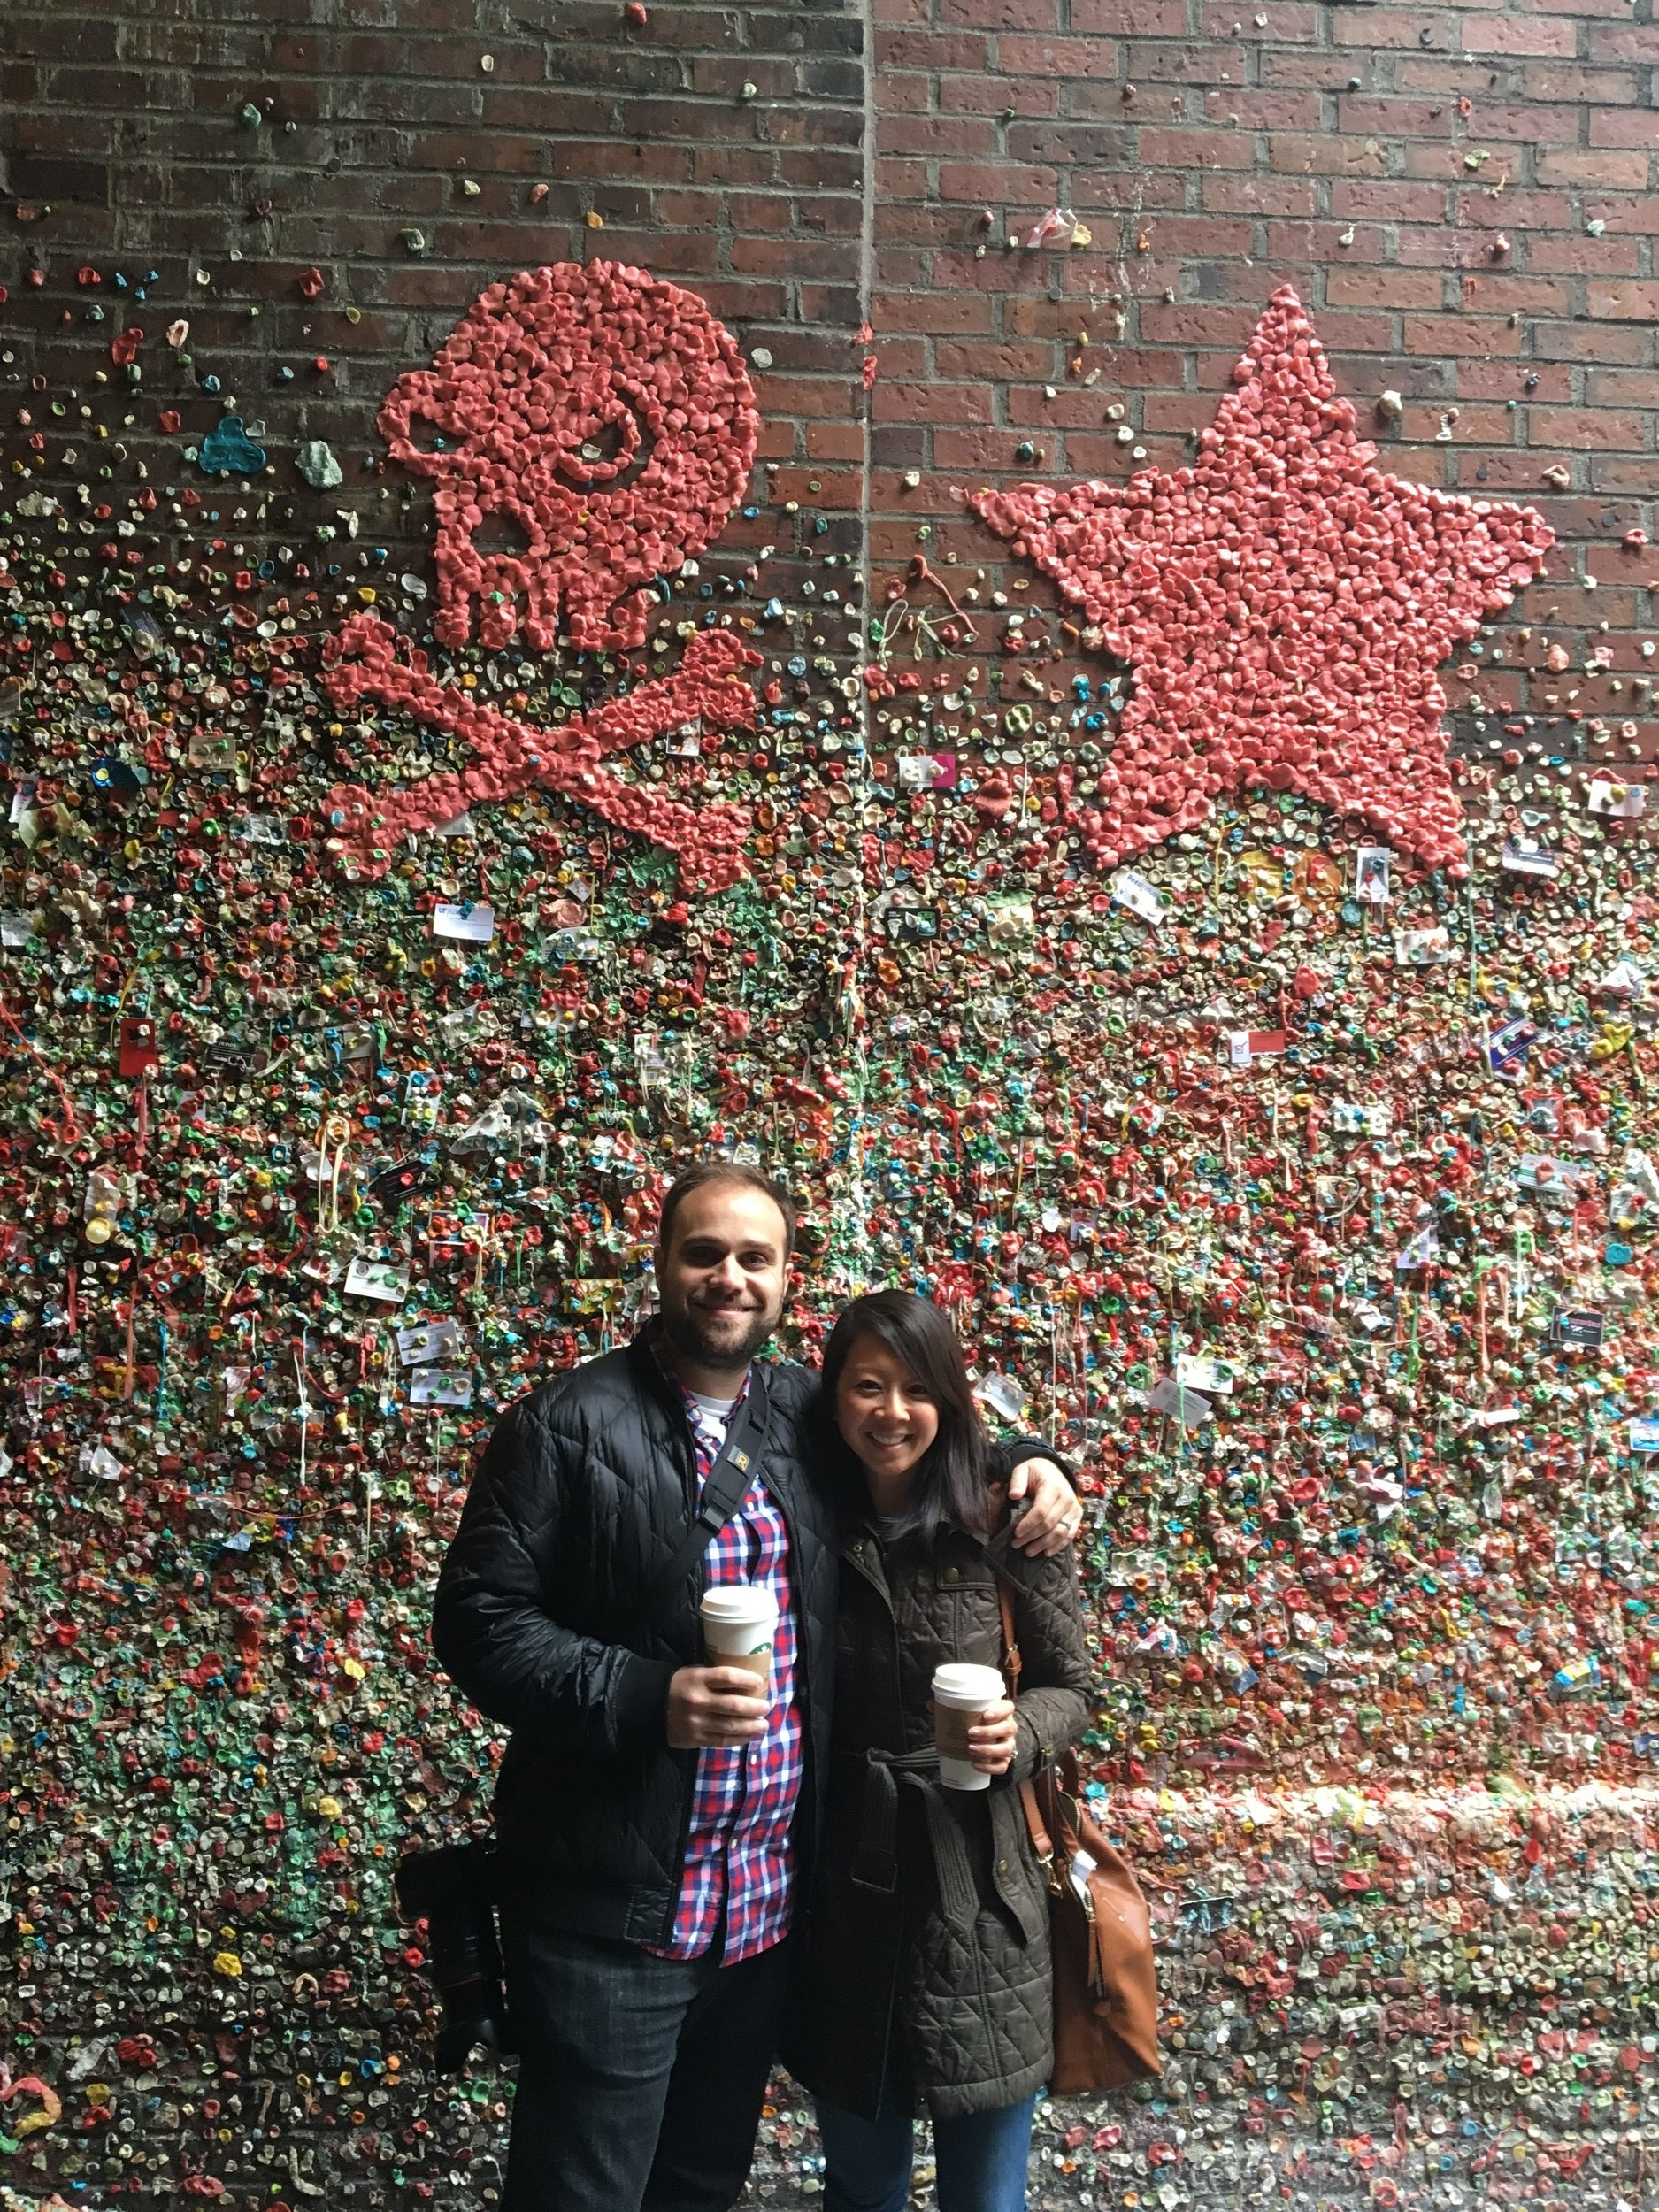 This has got to be one of the coolest/weirdest/grossest attractions we've visited. I mean, a wall full of other people's chewed up gum. But hey, when in Rome (er, Seattle). I, too, added my own piece of chewed up gum up on that  wall .